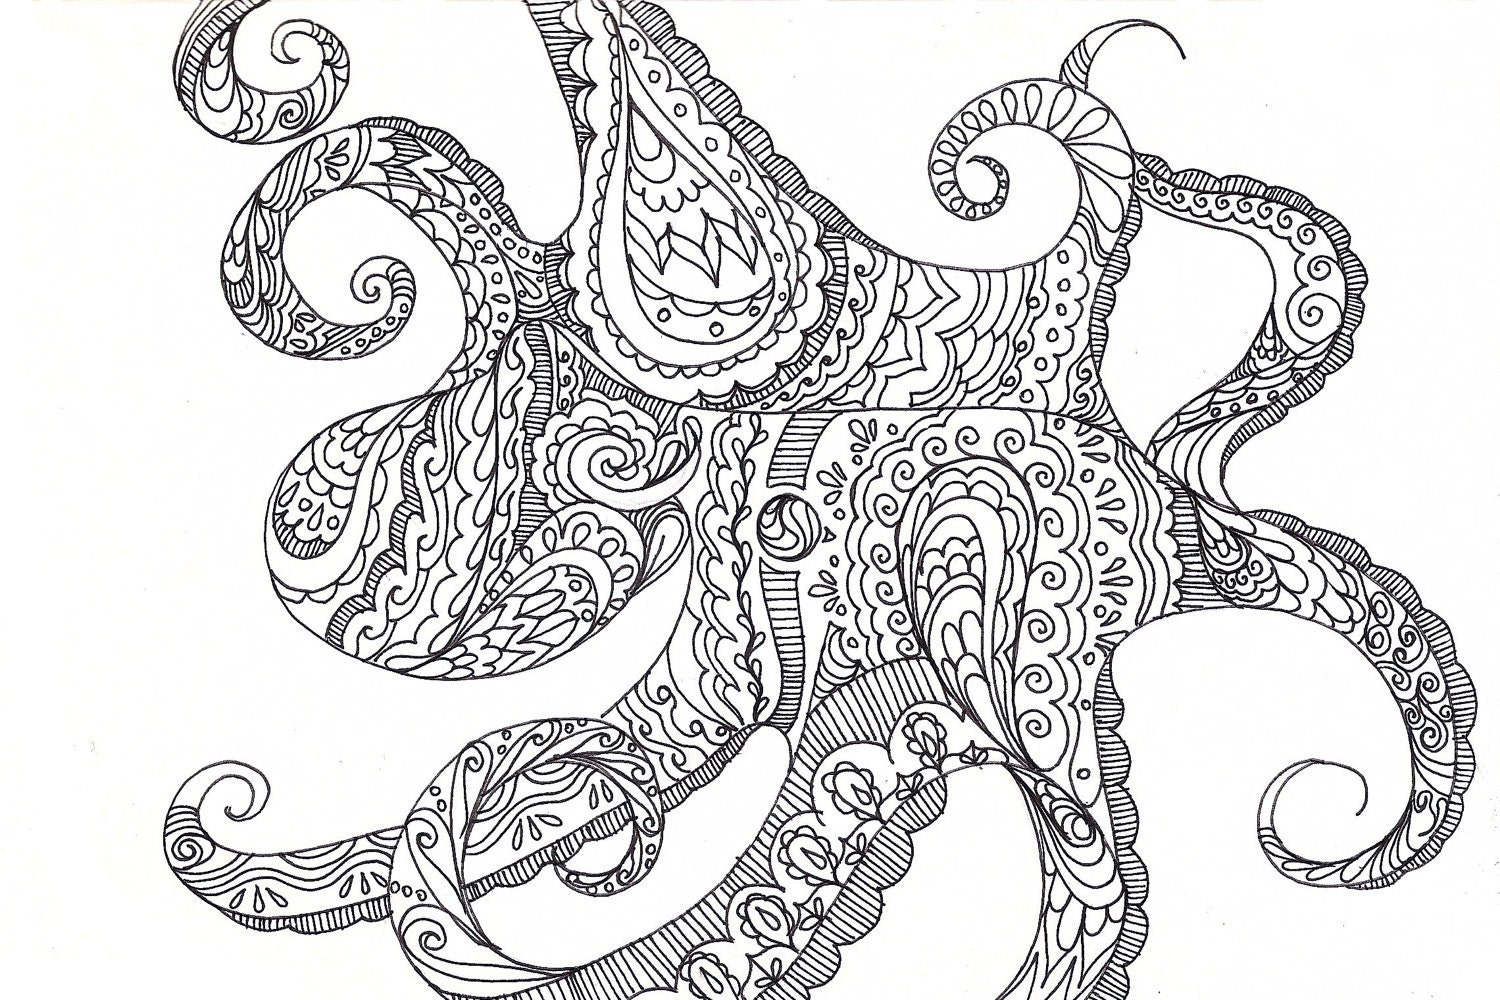 Uncategorized Drawing Of An Octopus octopus drawing a suitable cephalopod fine art giclee